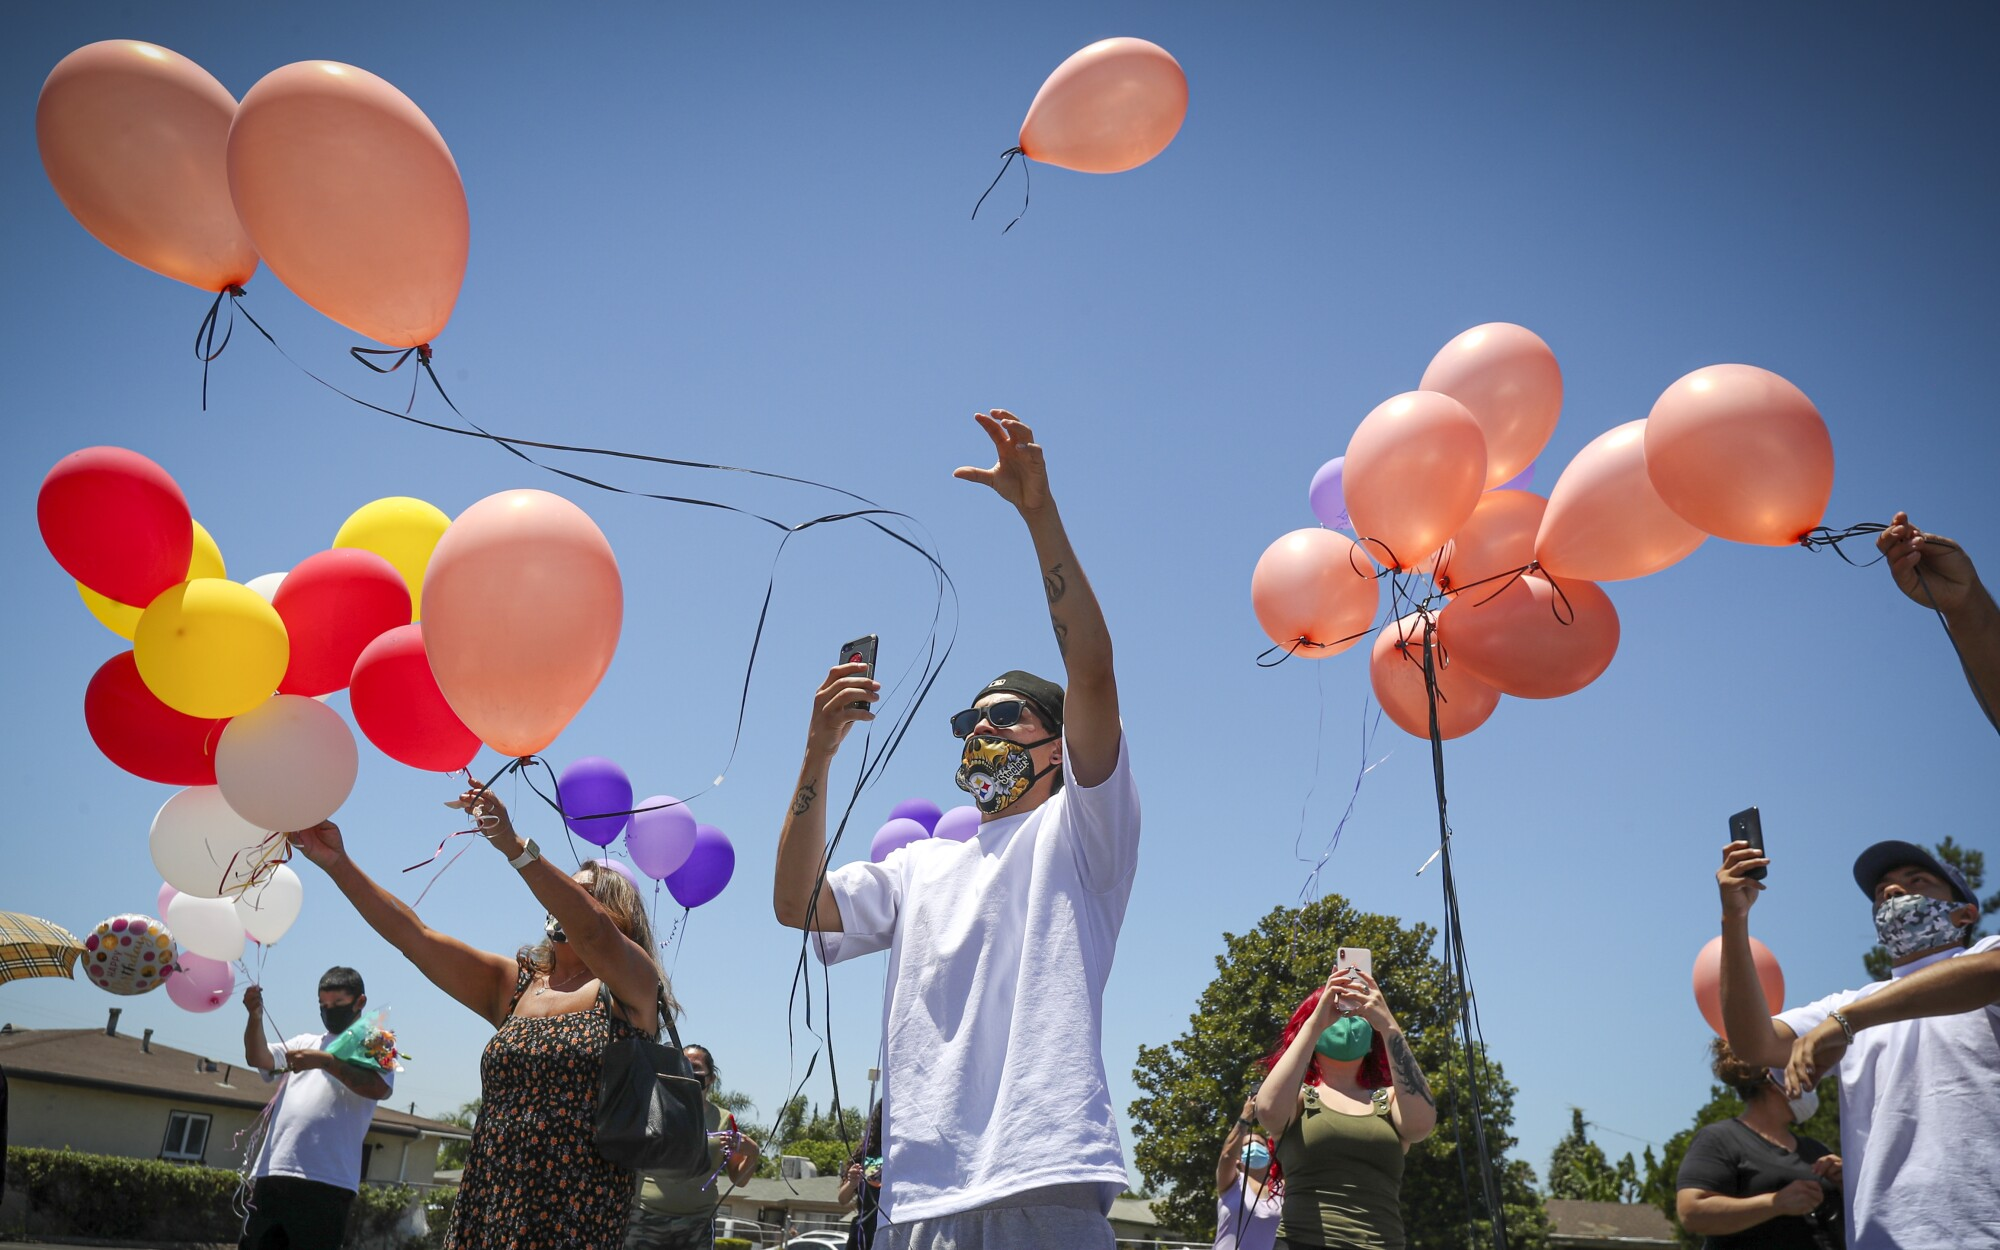 Mourners release balloons at a memorial service for Lucy Reyes.